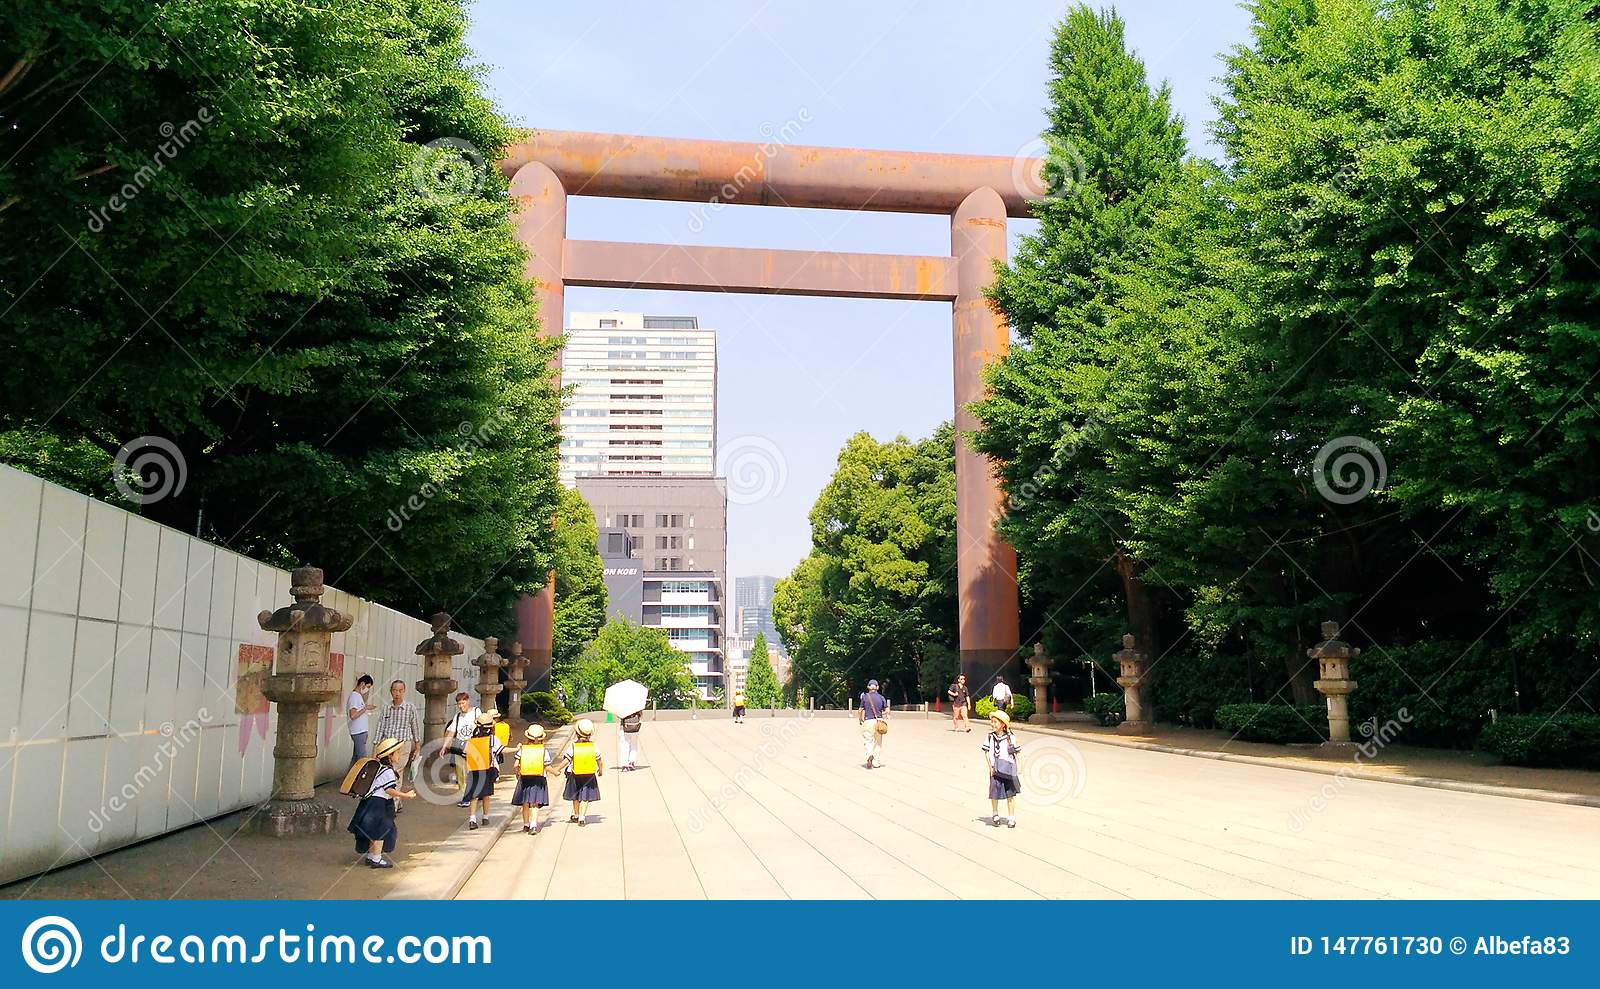 Japan, Tokyo, the view of the small students